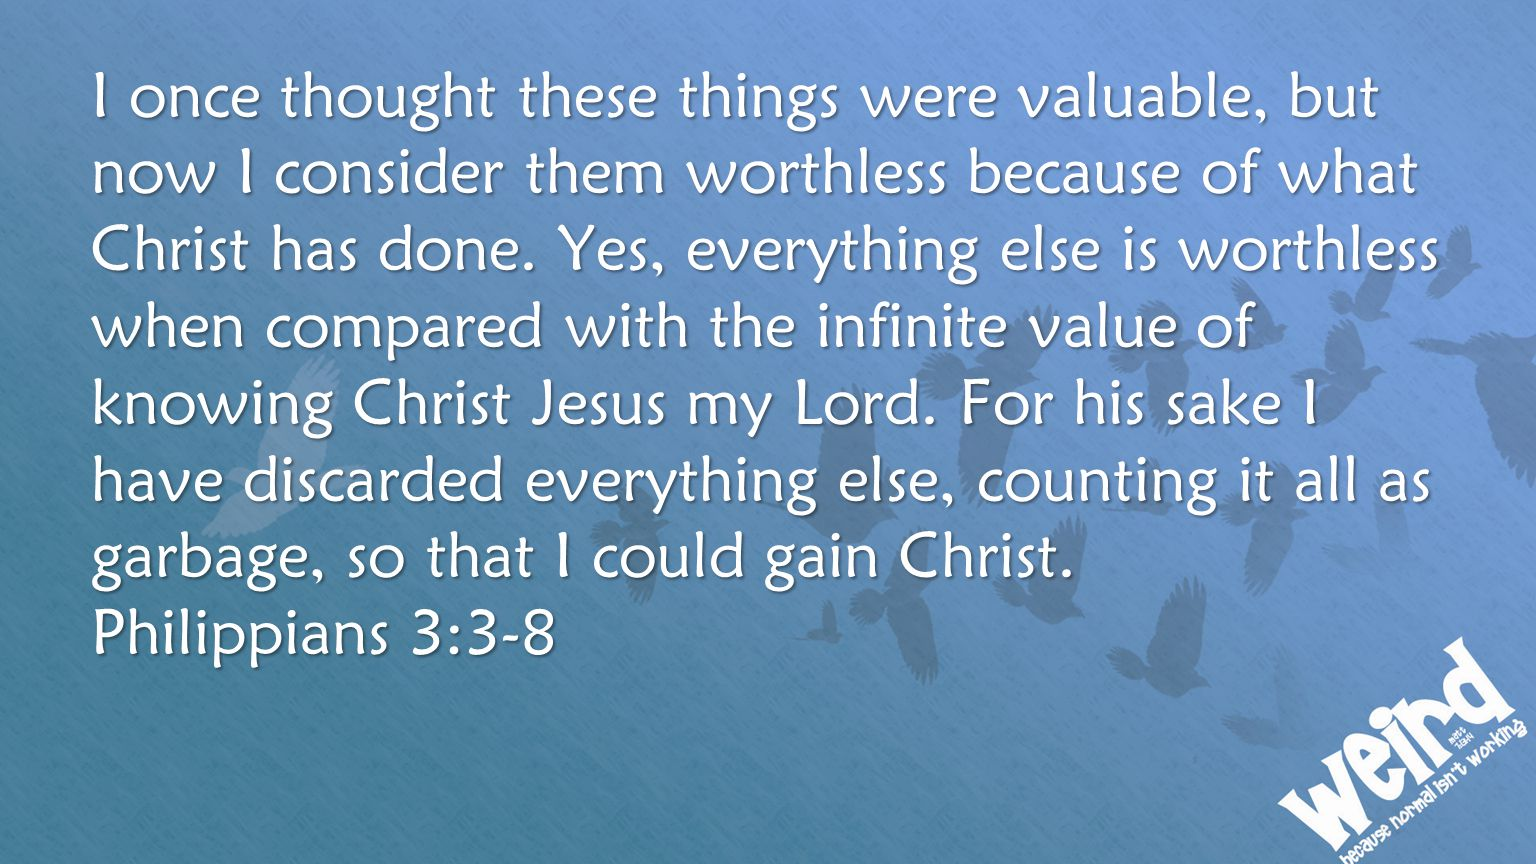 I once thought these things were valuable, but now I consider them worthless because of what Christ has done. Yes, everything else is worthless when c